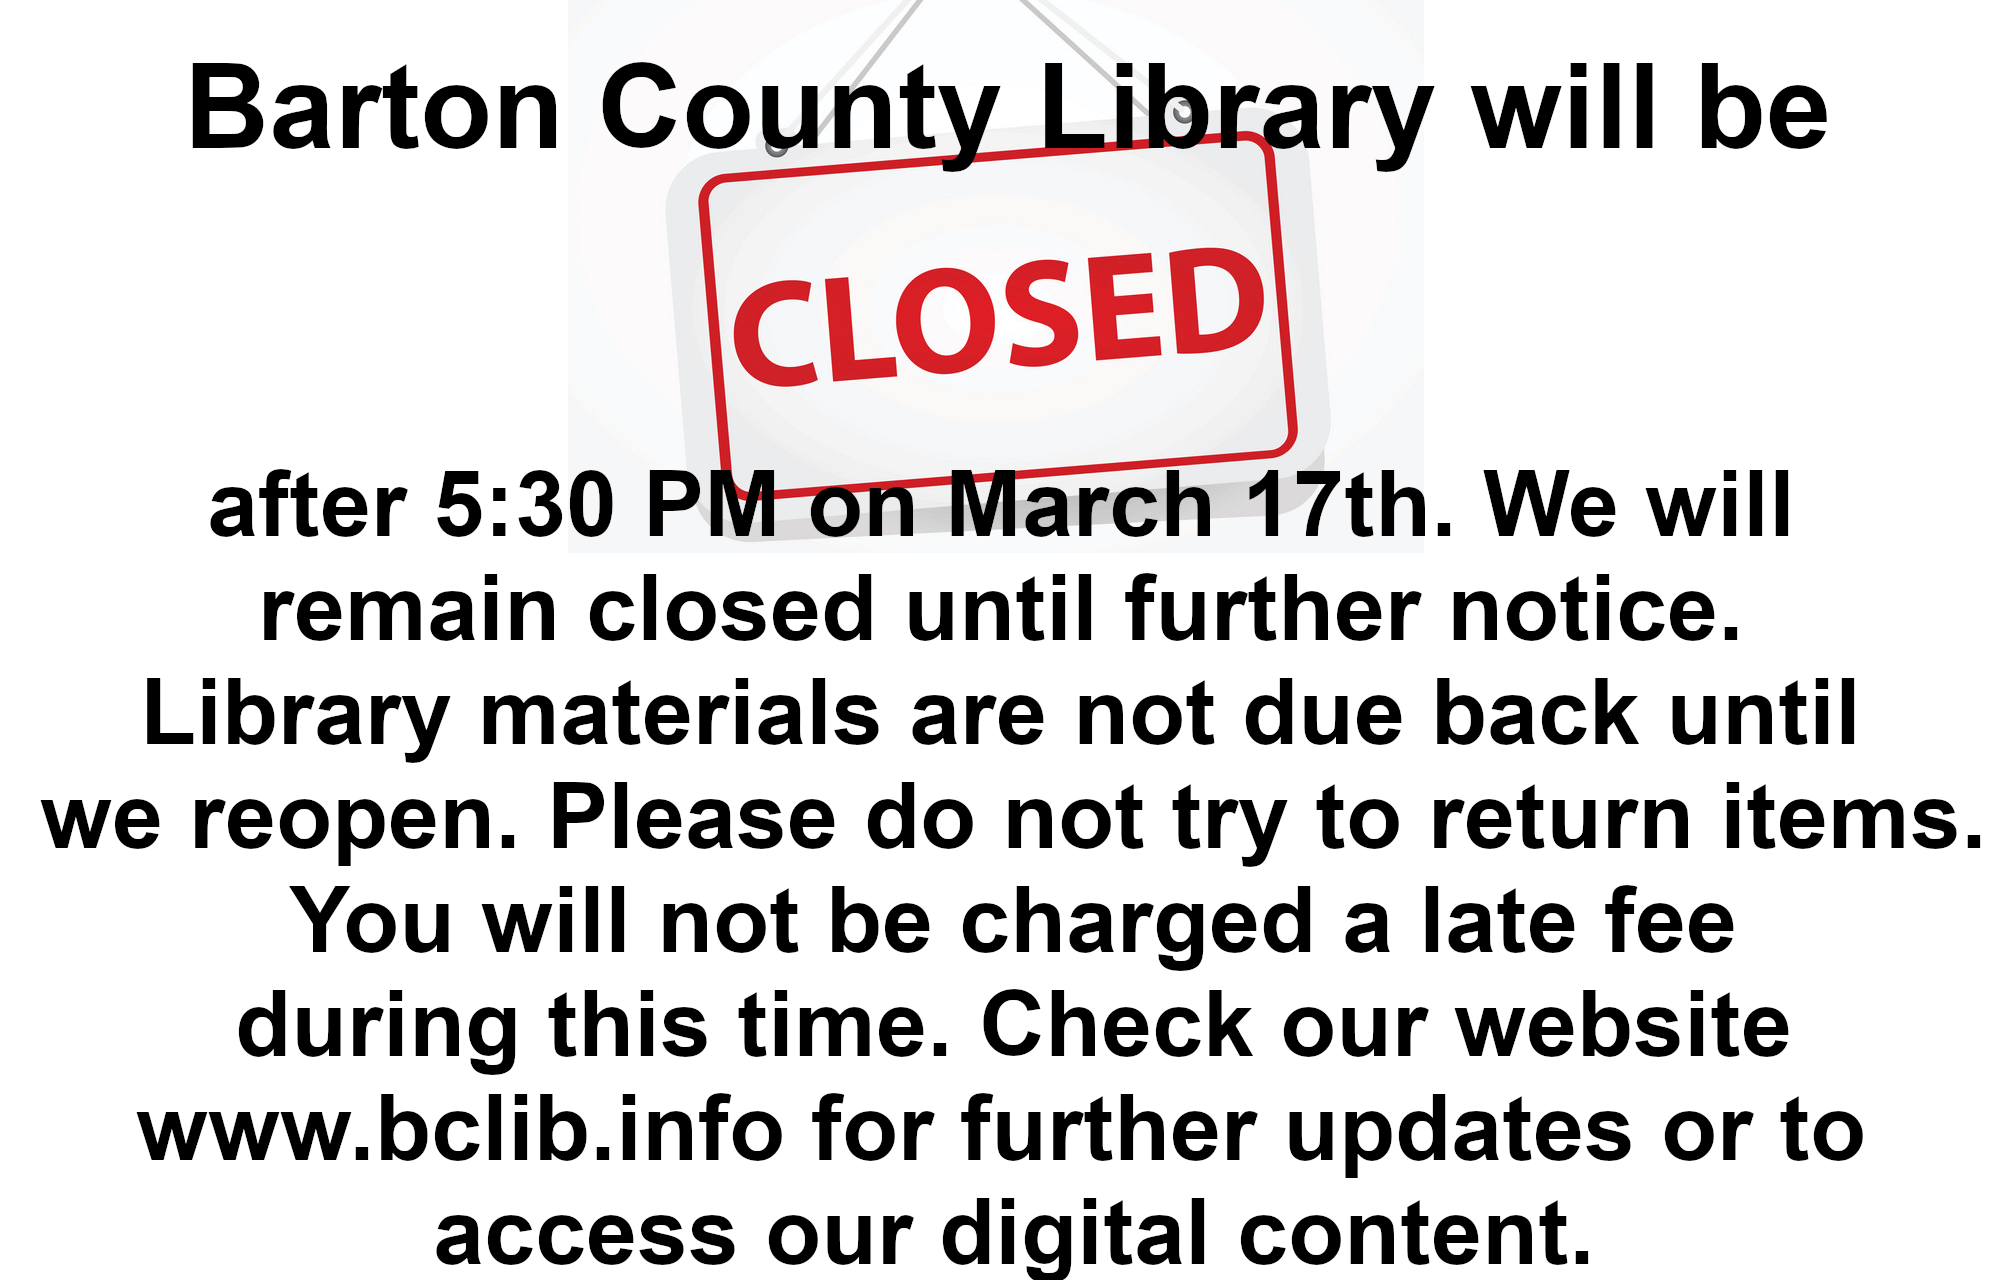 Barton County Library will be closed after 5:30 PM on March 17th. We will  remain closed until further notice.  Library materials are not due back until  we reopen. Please do not try to return items.  You will not be charged a late fee   during this time. Check our website  www.bclib.info for further updates or to  access our digital content.